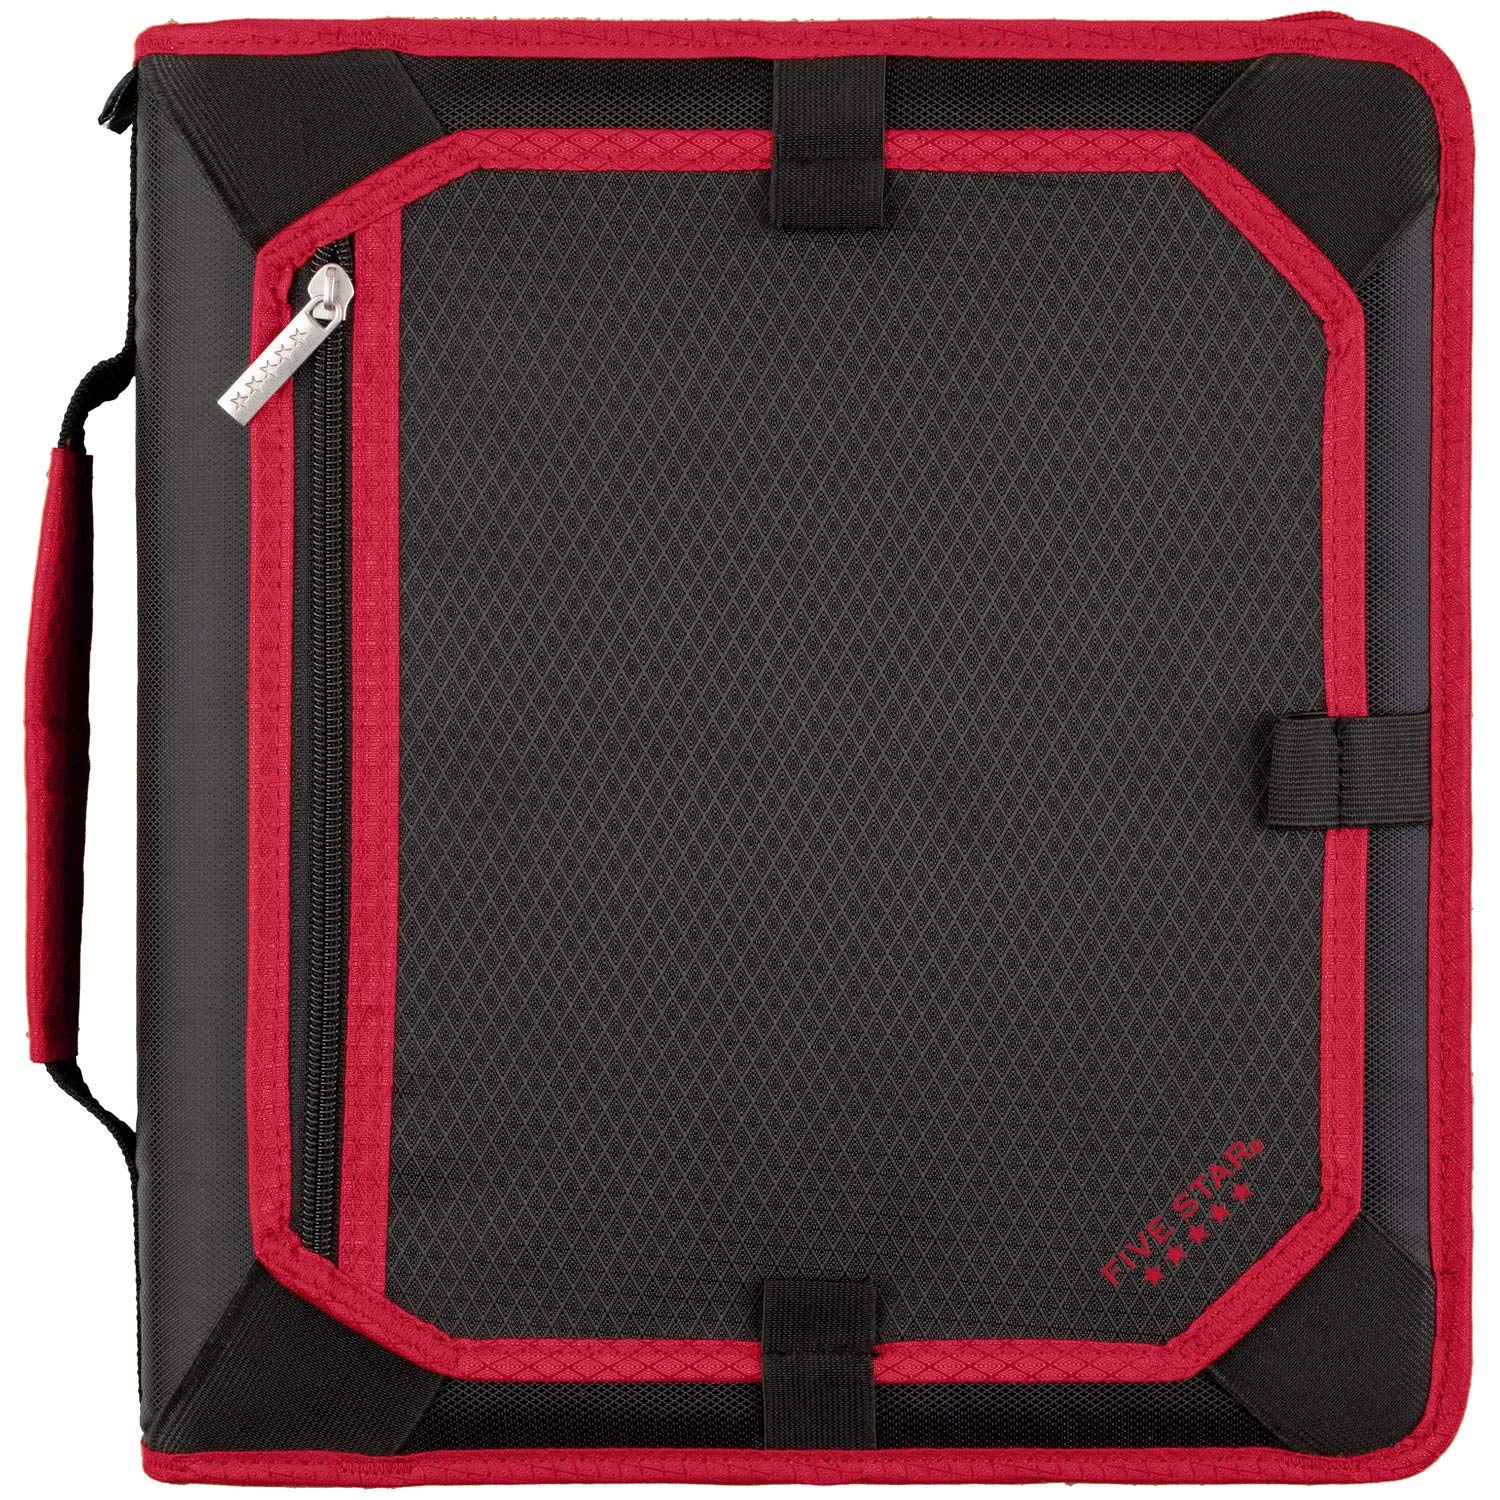 Five Star Zipper Binder, 2 Inch 3 Ring Binder, Expansion Panel, Durable, Black/Red/Gray (29052BE7) by Five Star